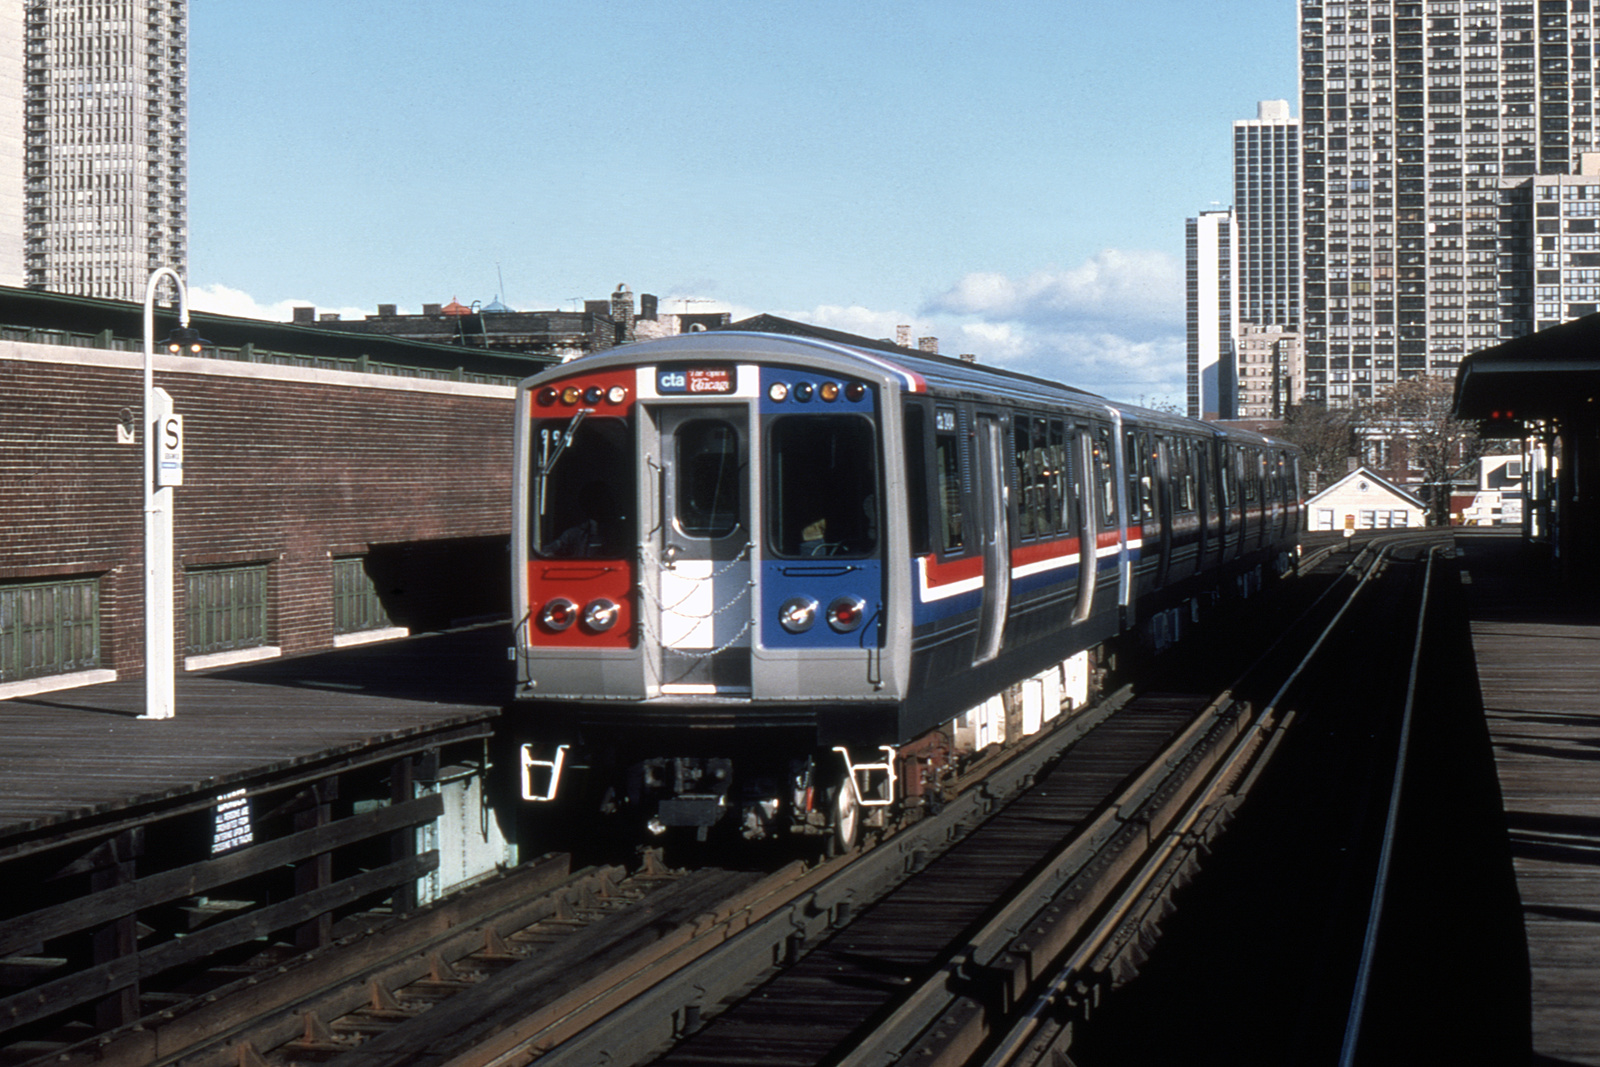 (436k, 1024x682)<br><b>Country:</b> United States<br><b>City:</b> Chicago, IL<br><b>System:</b> Chicago Transit Authority <br><b>Line:</b> CTA Brown/Purple <br><b>Location:</b> Sedgwick <br><b>Car:</b> CTA 2400 Series 2404 <br><b>Collection of:</b> David Pirmann<br><b>Date:</b> 10/31/1976<br><b>Viewed (this week/total):</b> 7 / 721